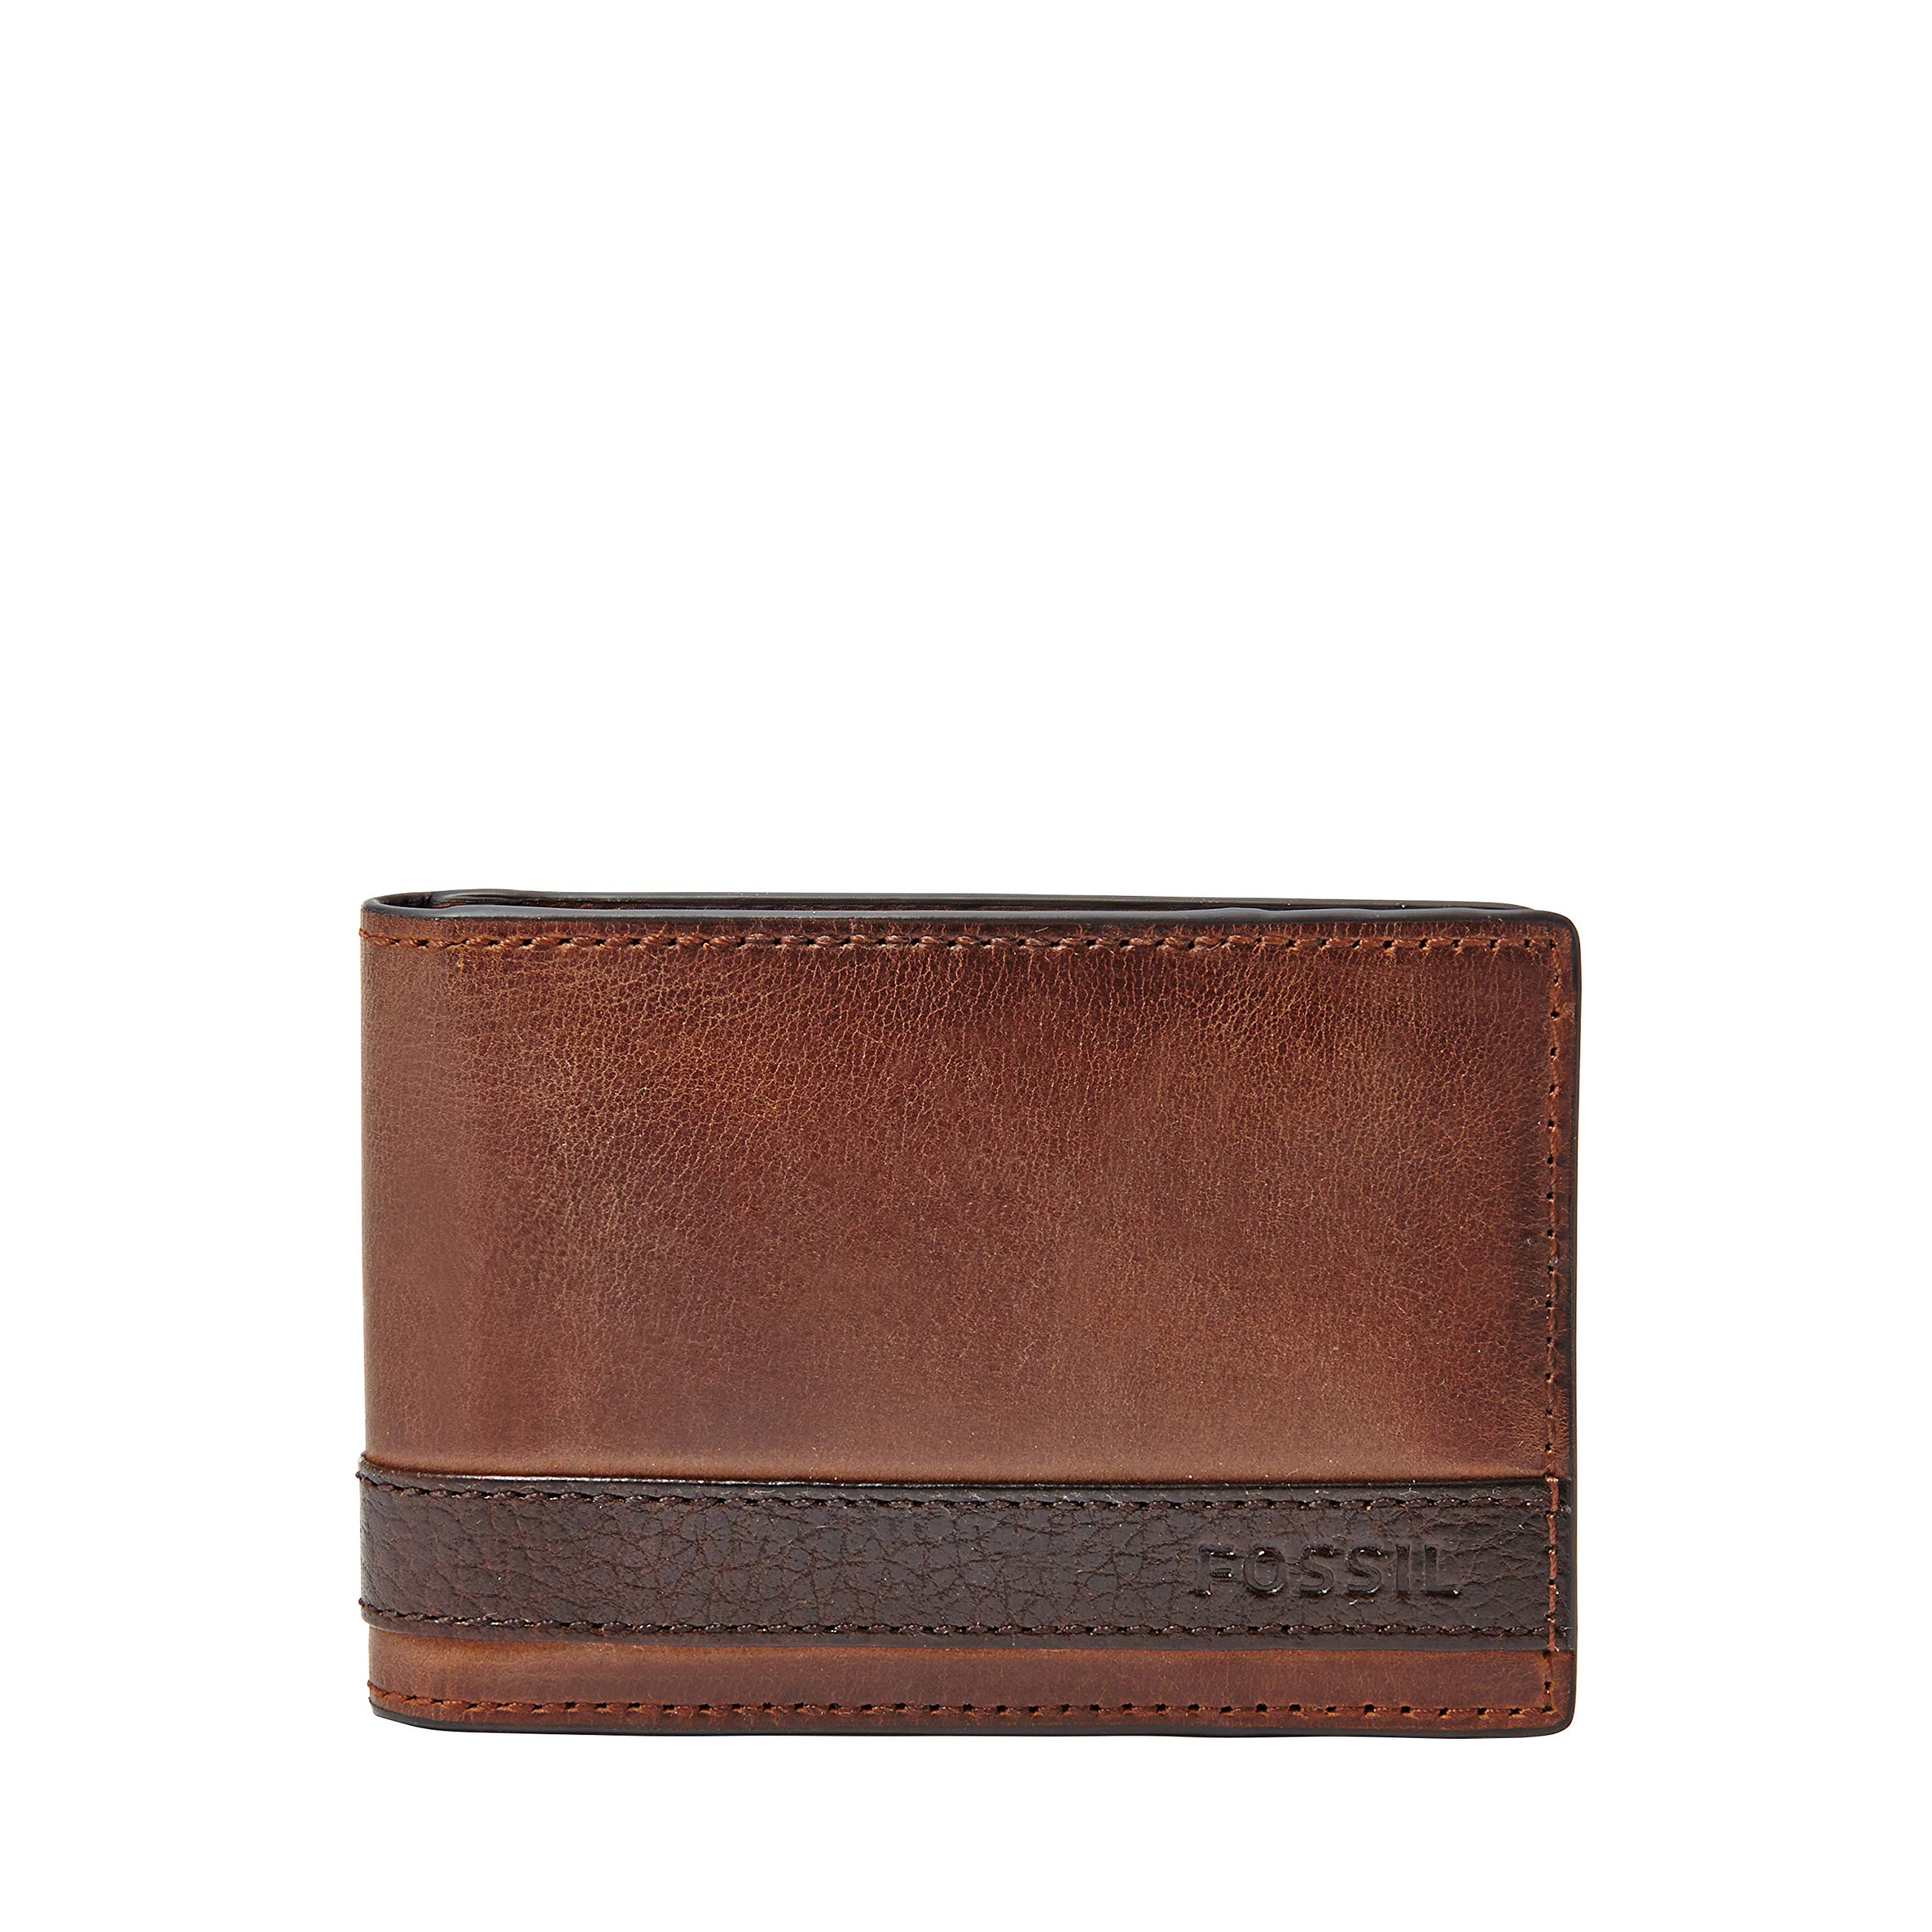 Fossil Leather Money Bifold Wallet